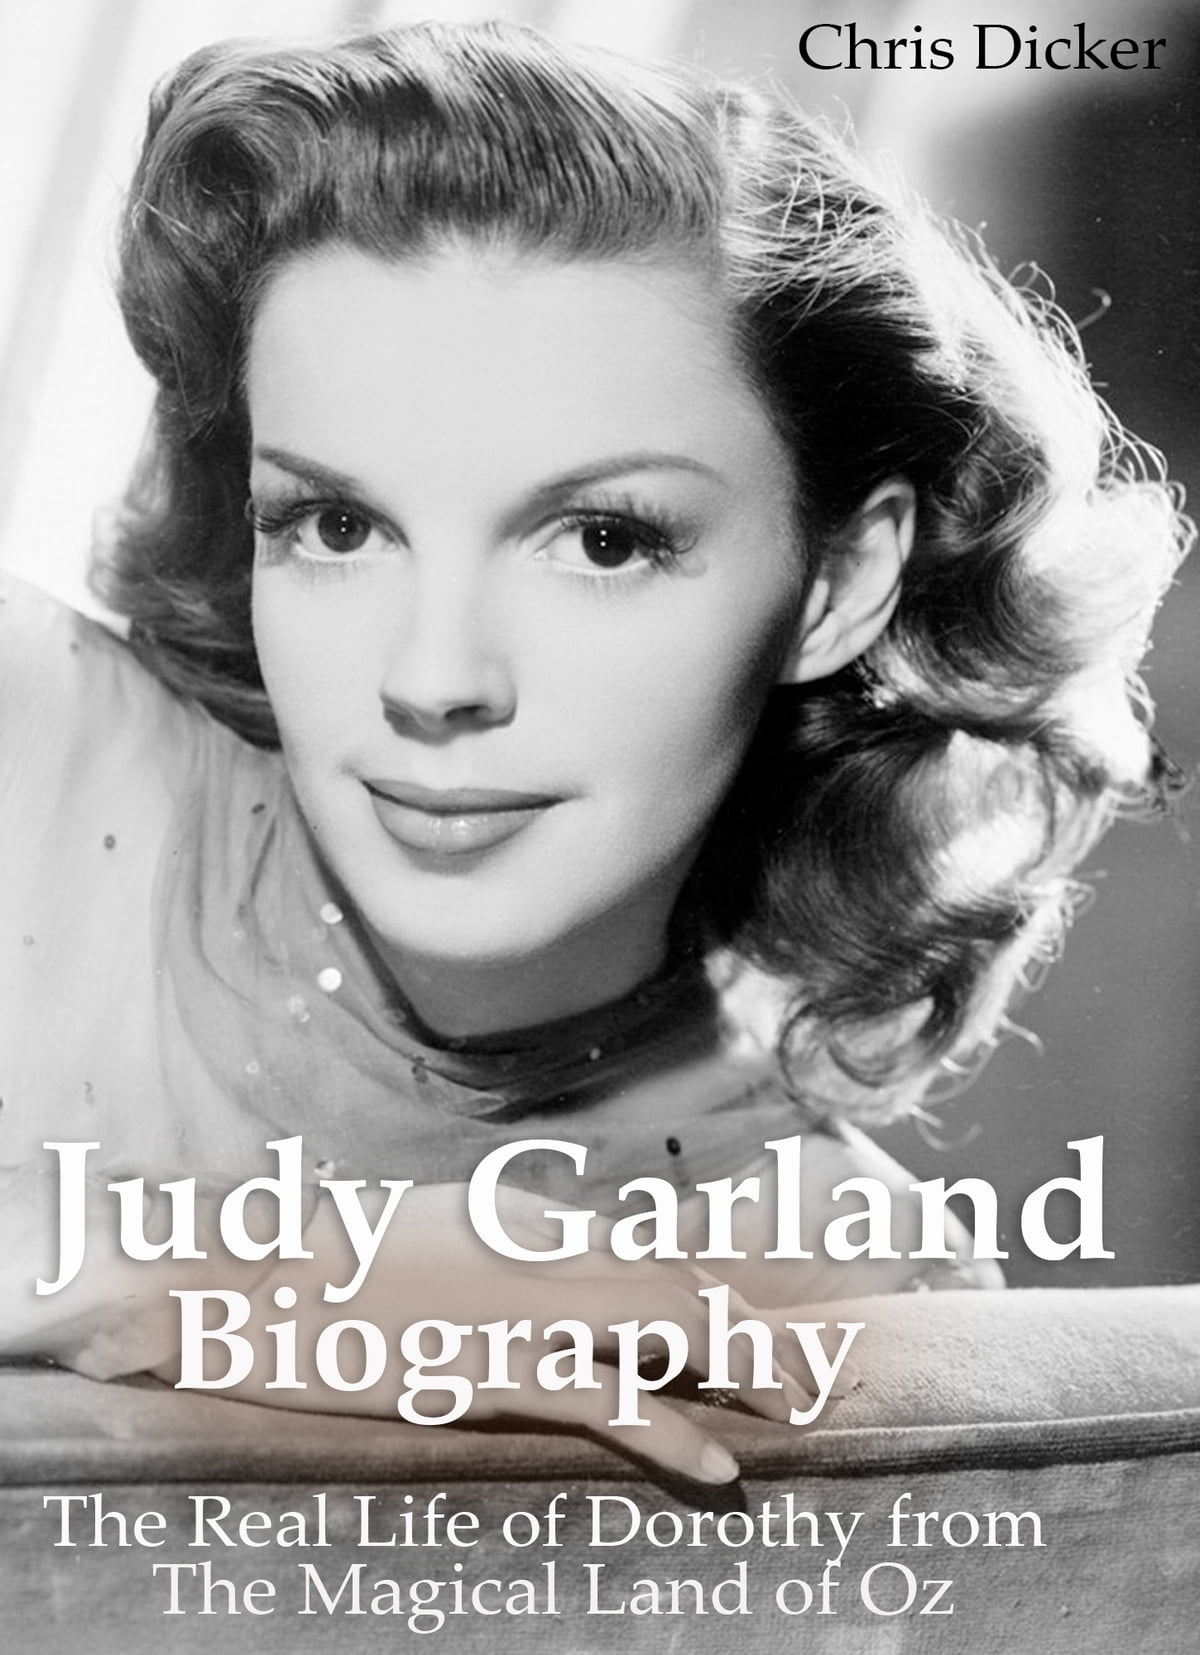 Judy Garland Biography The Real Life Of Dorothy From The Magical Land Of Oz Ebook By Chris Dicker 9780463461914 Rakuten Kobo United States